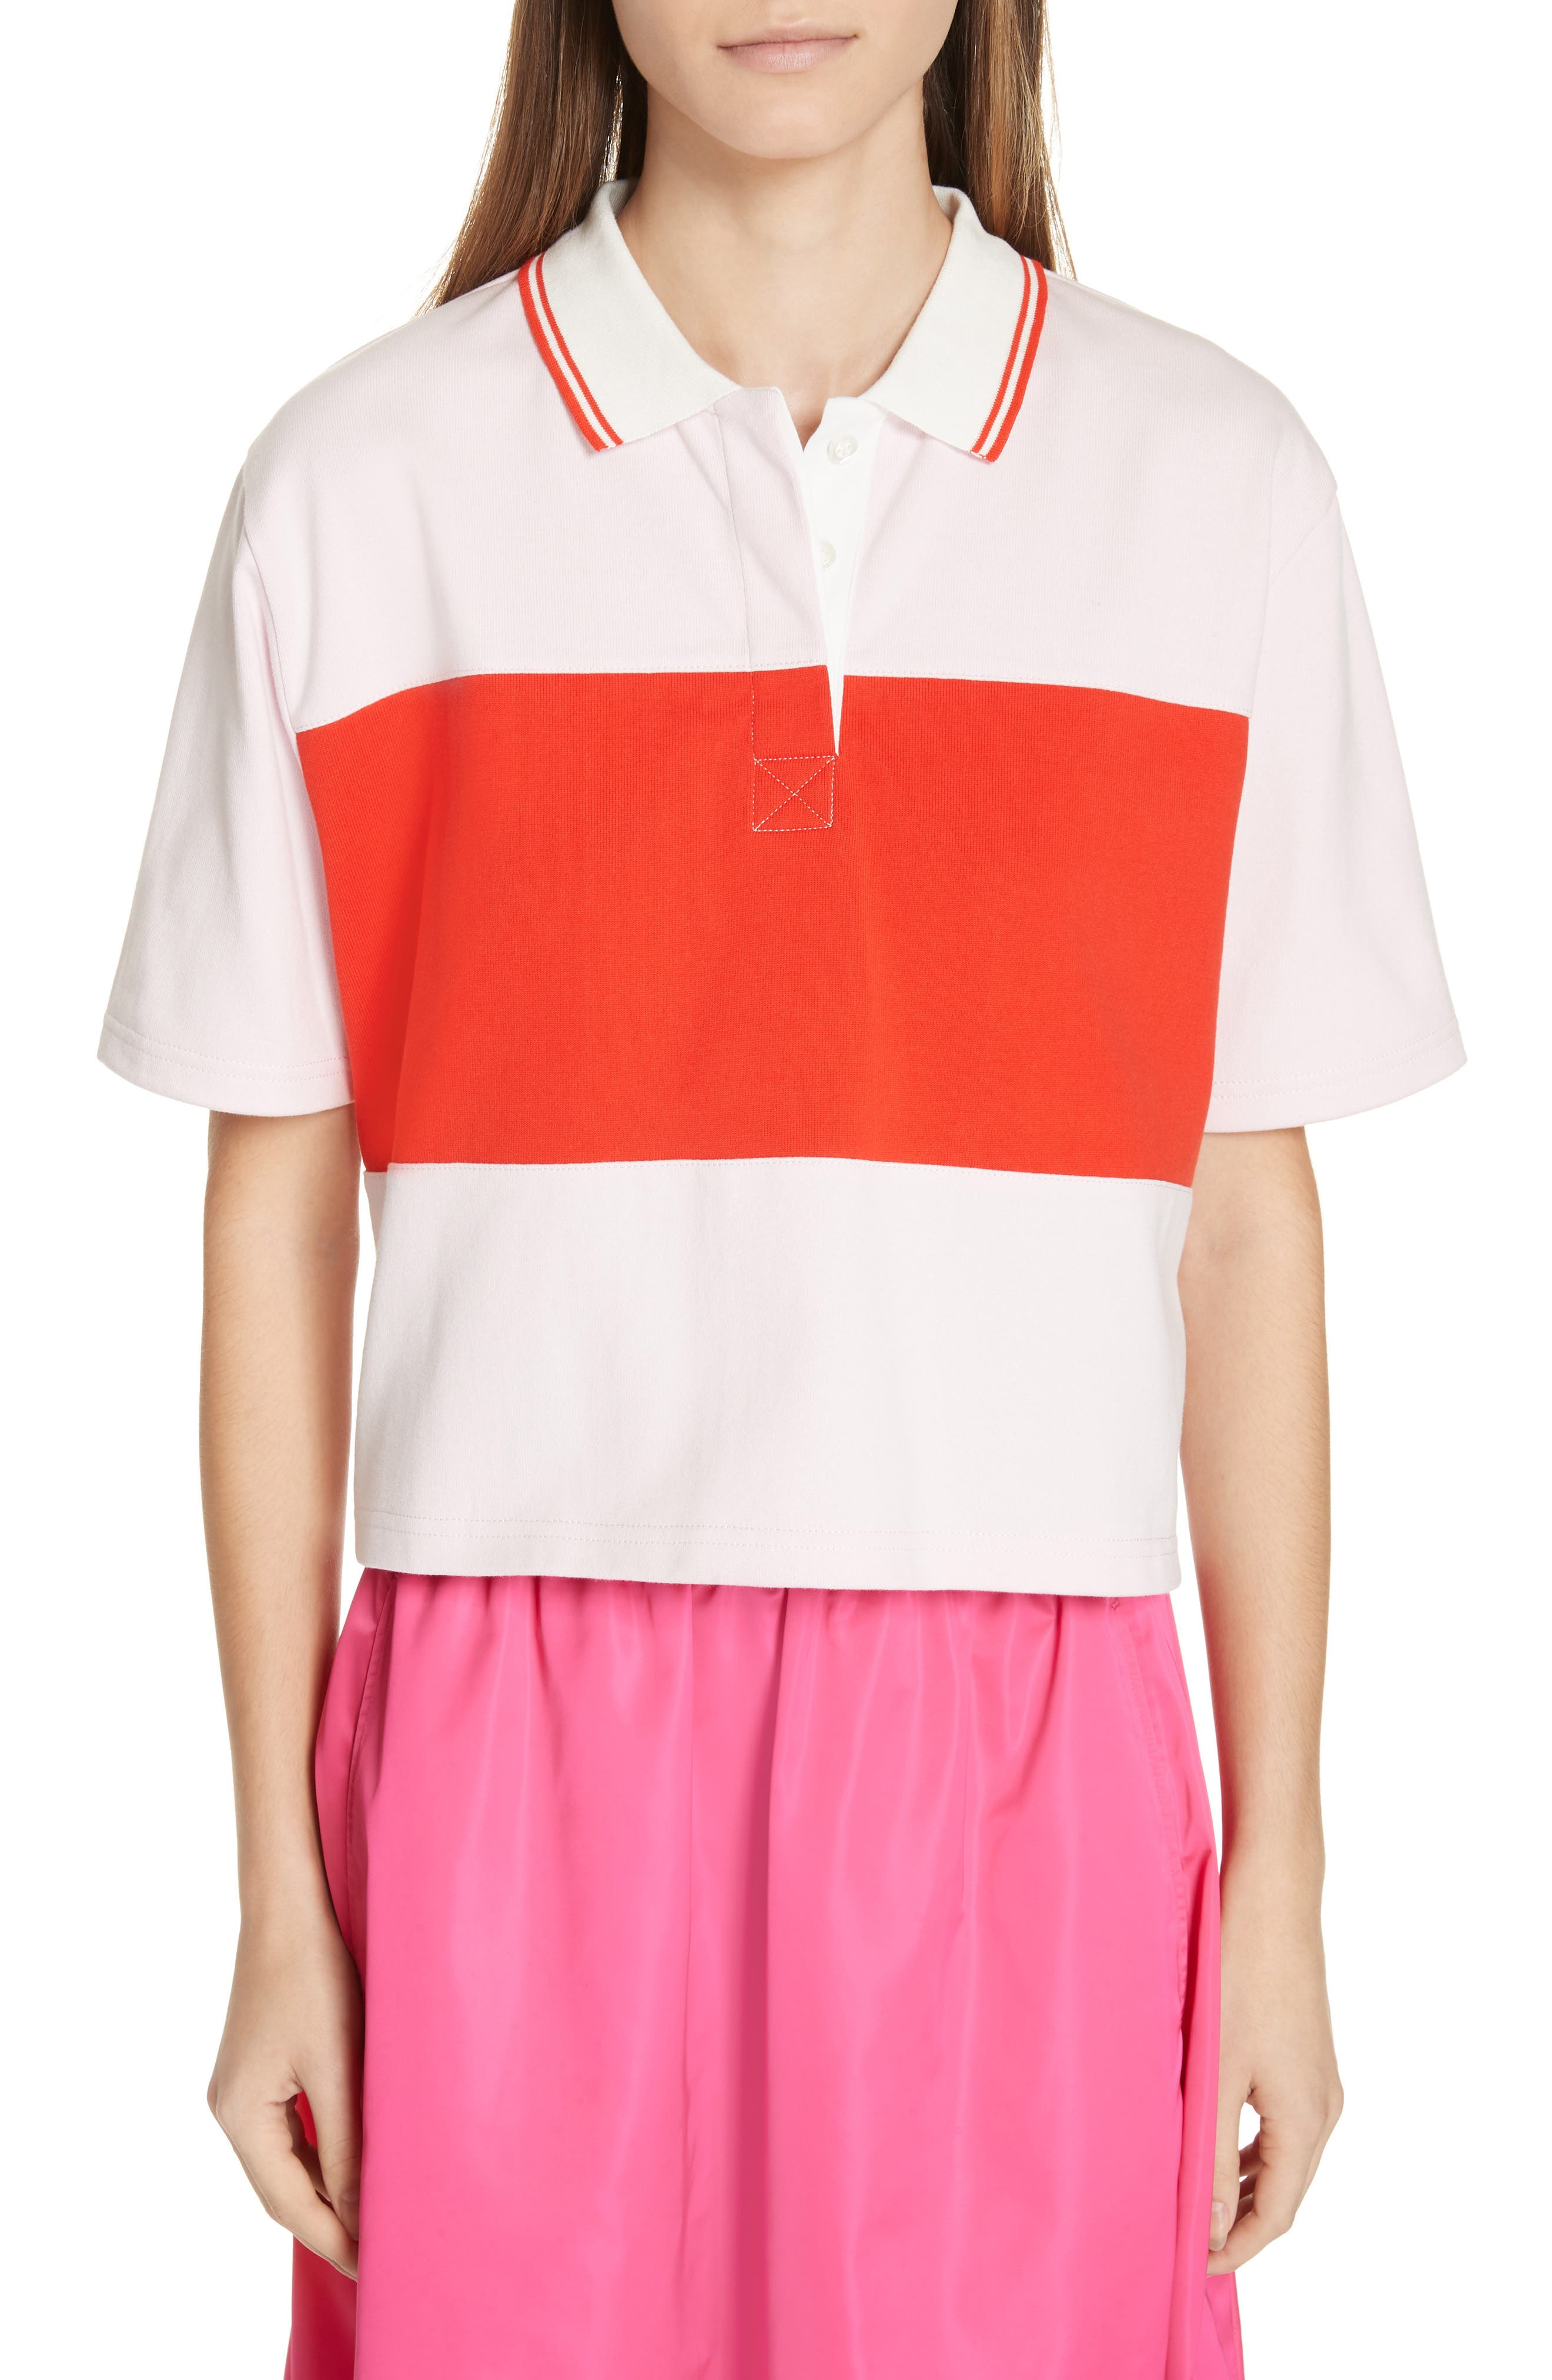 Tory Sport Tops Colorblock Crop Polo